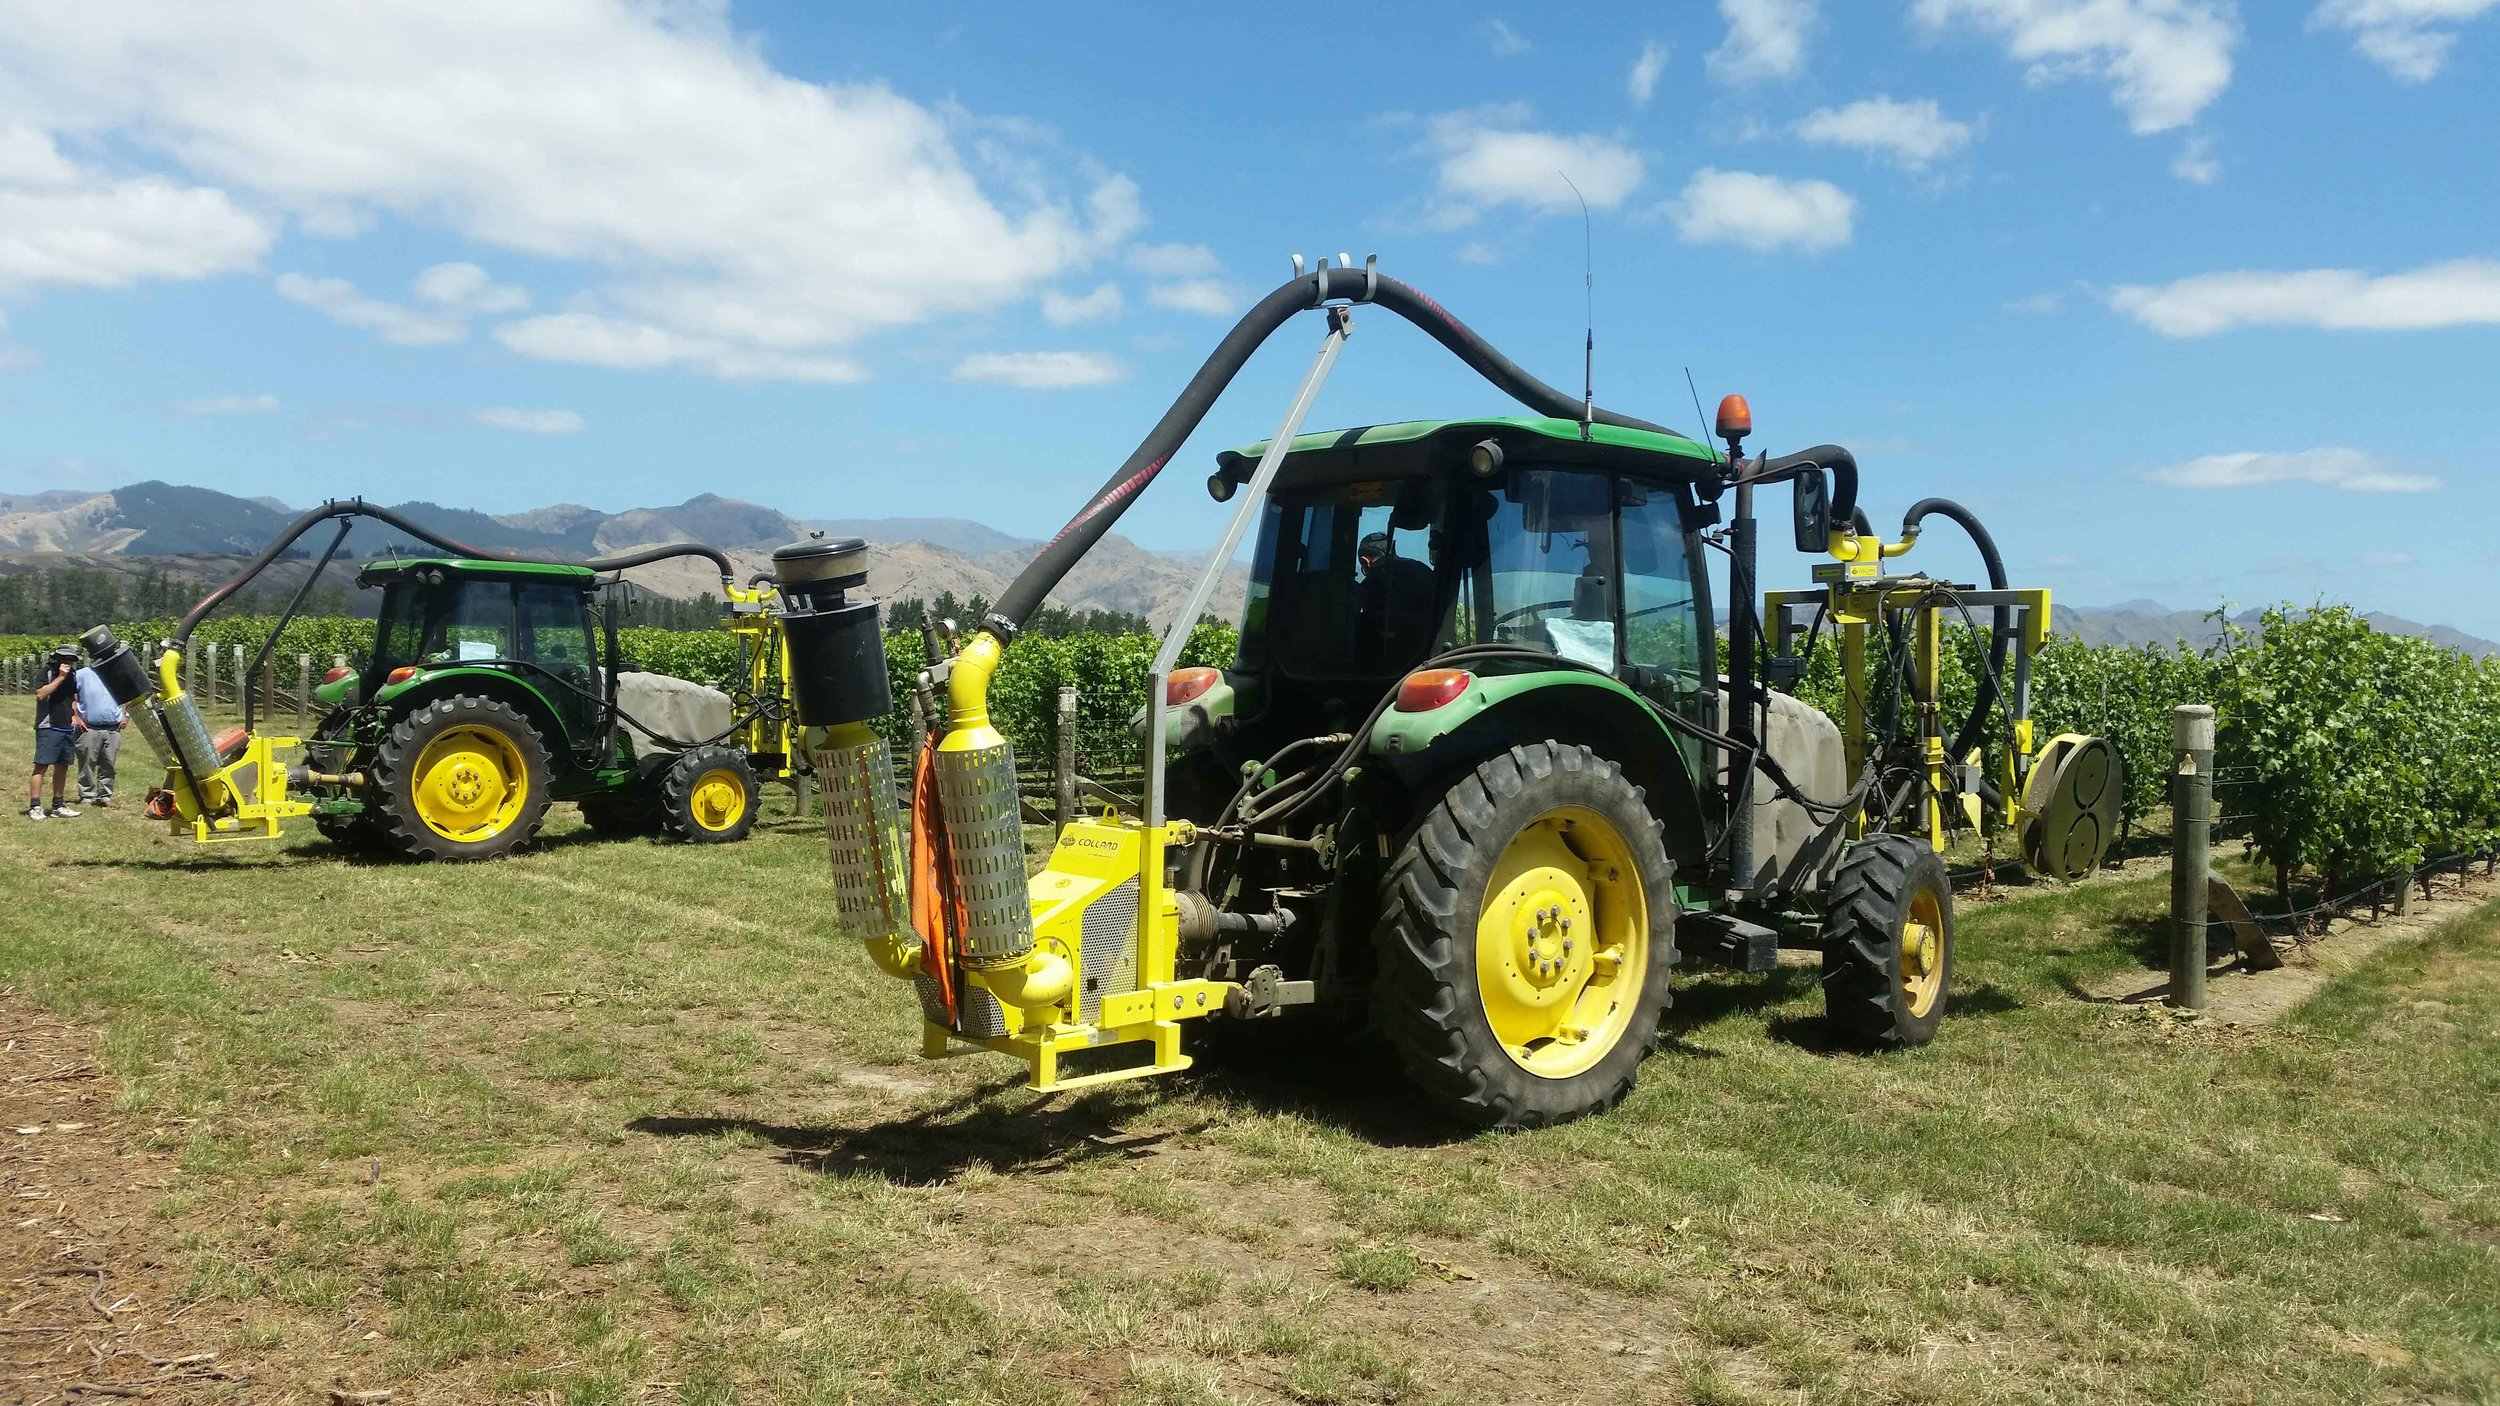 Experienced Vineyard Operators - Experienced machine operators who care about the work and the results they deliver.